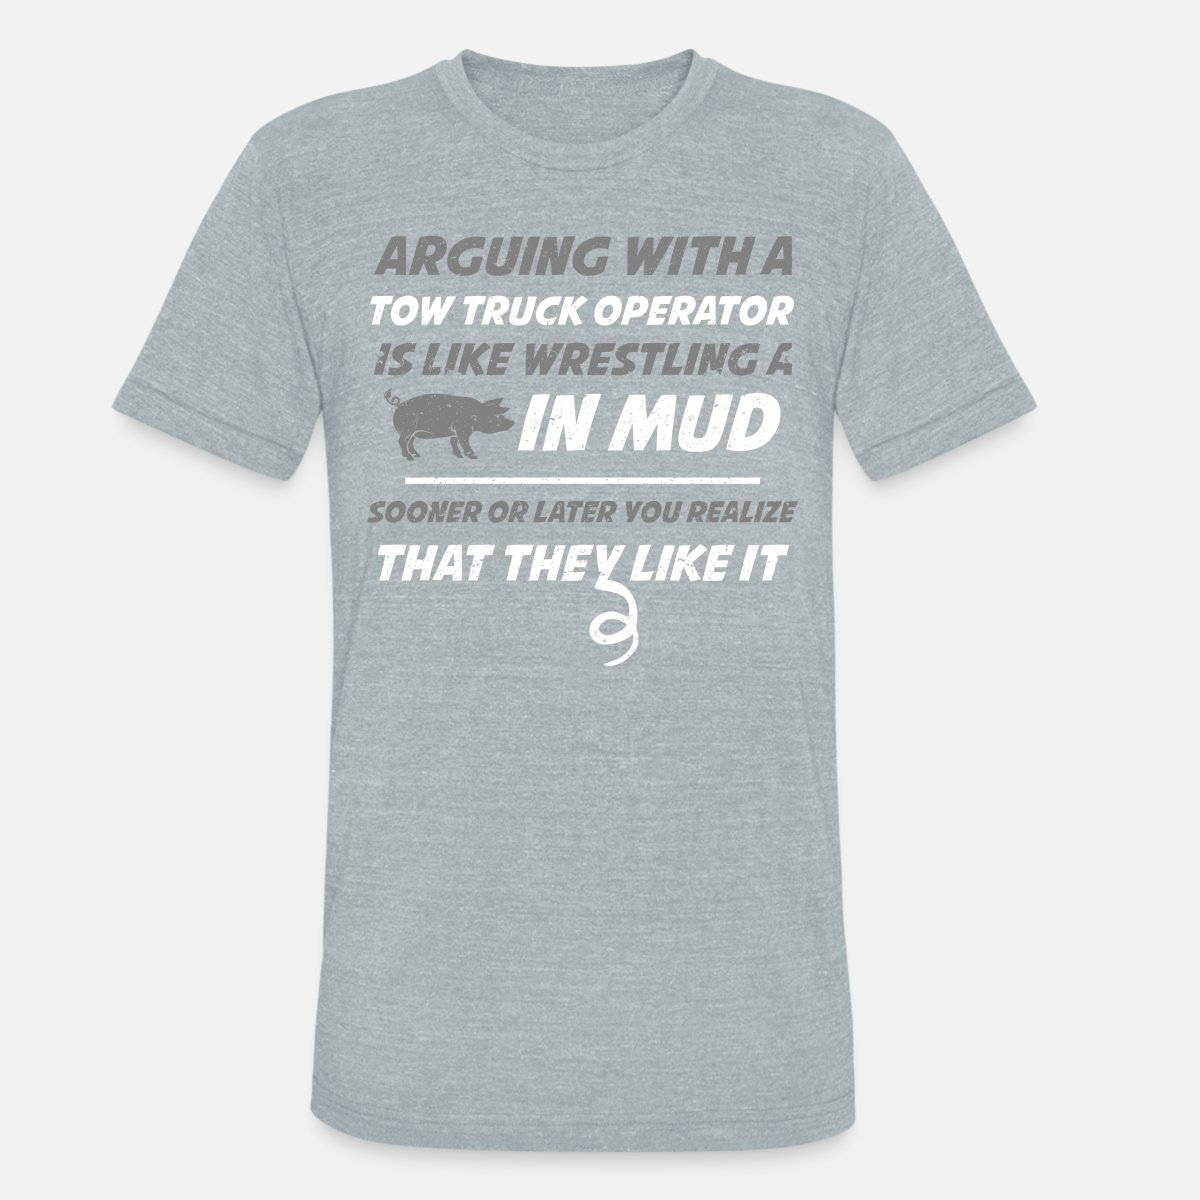 c096f77d8b6 Arguing With A Truck Operator They Like It Funny Tow Truck Shirt Unisex  Tri-Blend T-Shirt